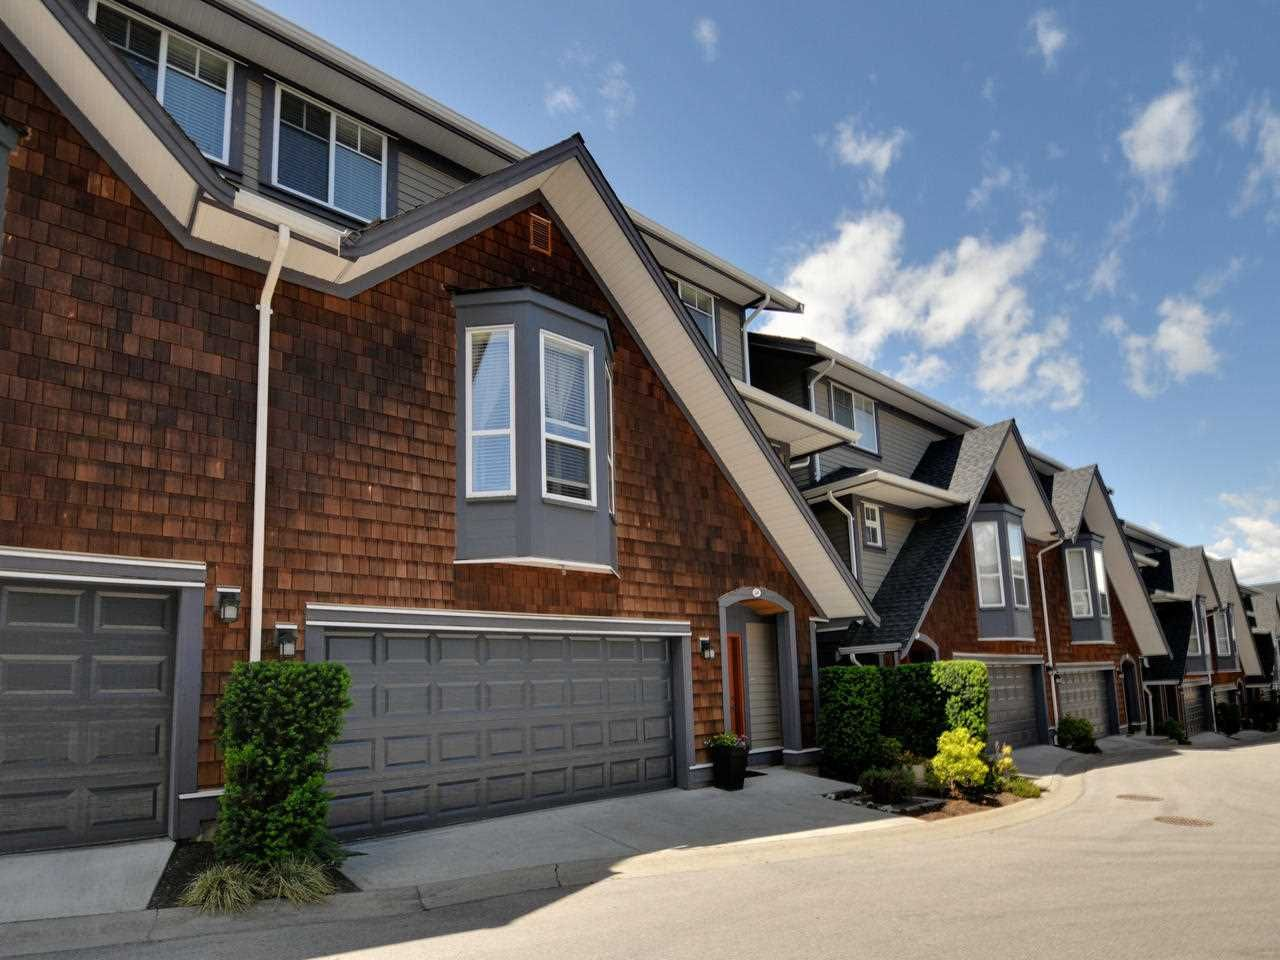 A stunning 5bdrm/4bath Luxury Townhome boasting over 2,300sf with extensive upgrades incl air conditioning throughout. Walk to Morgan Crossing shopping & transit. Southridge Private School, Semiahmoo Secondary & Sunnyside Elementary catchments!